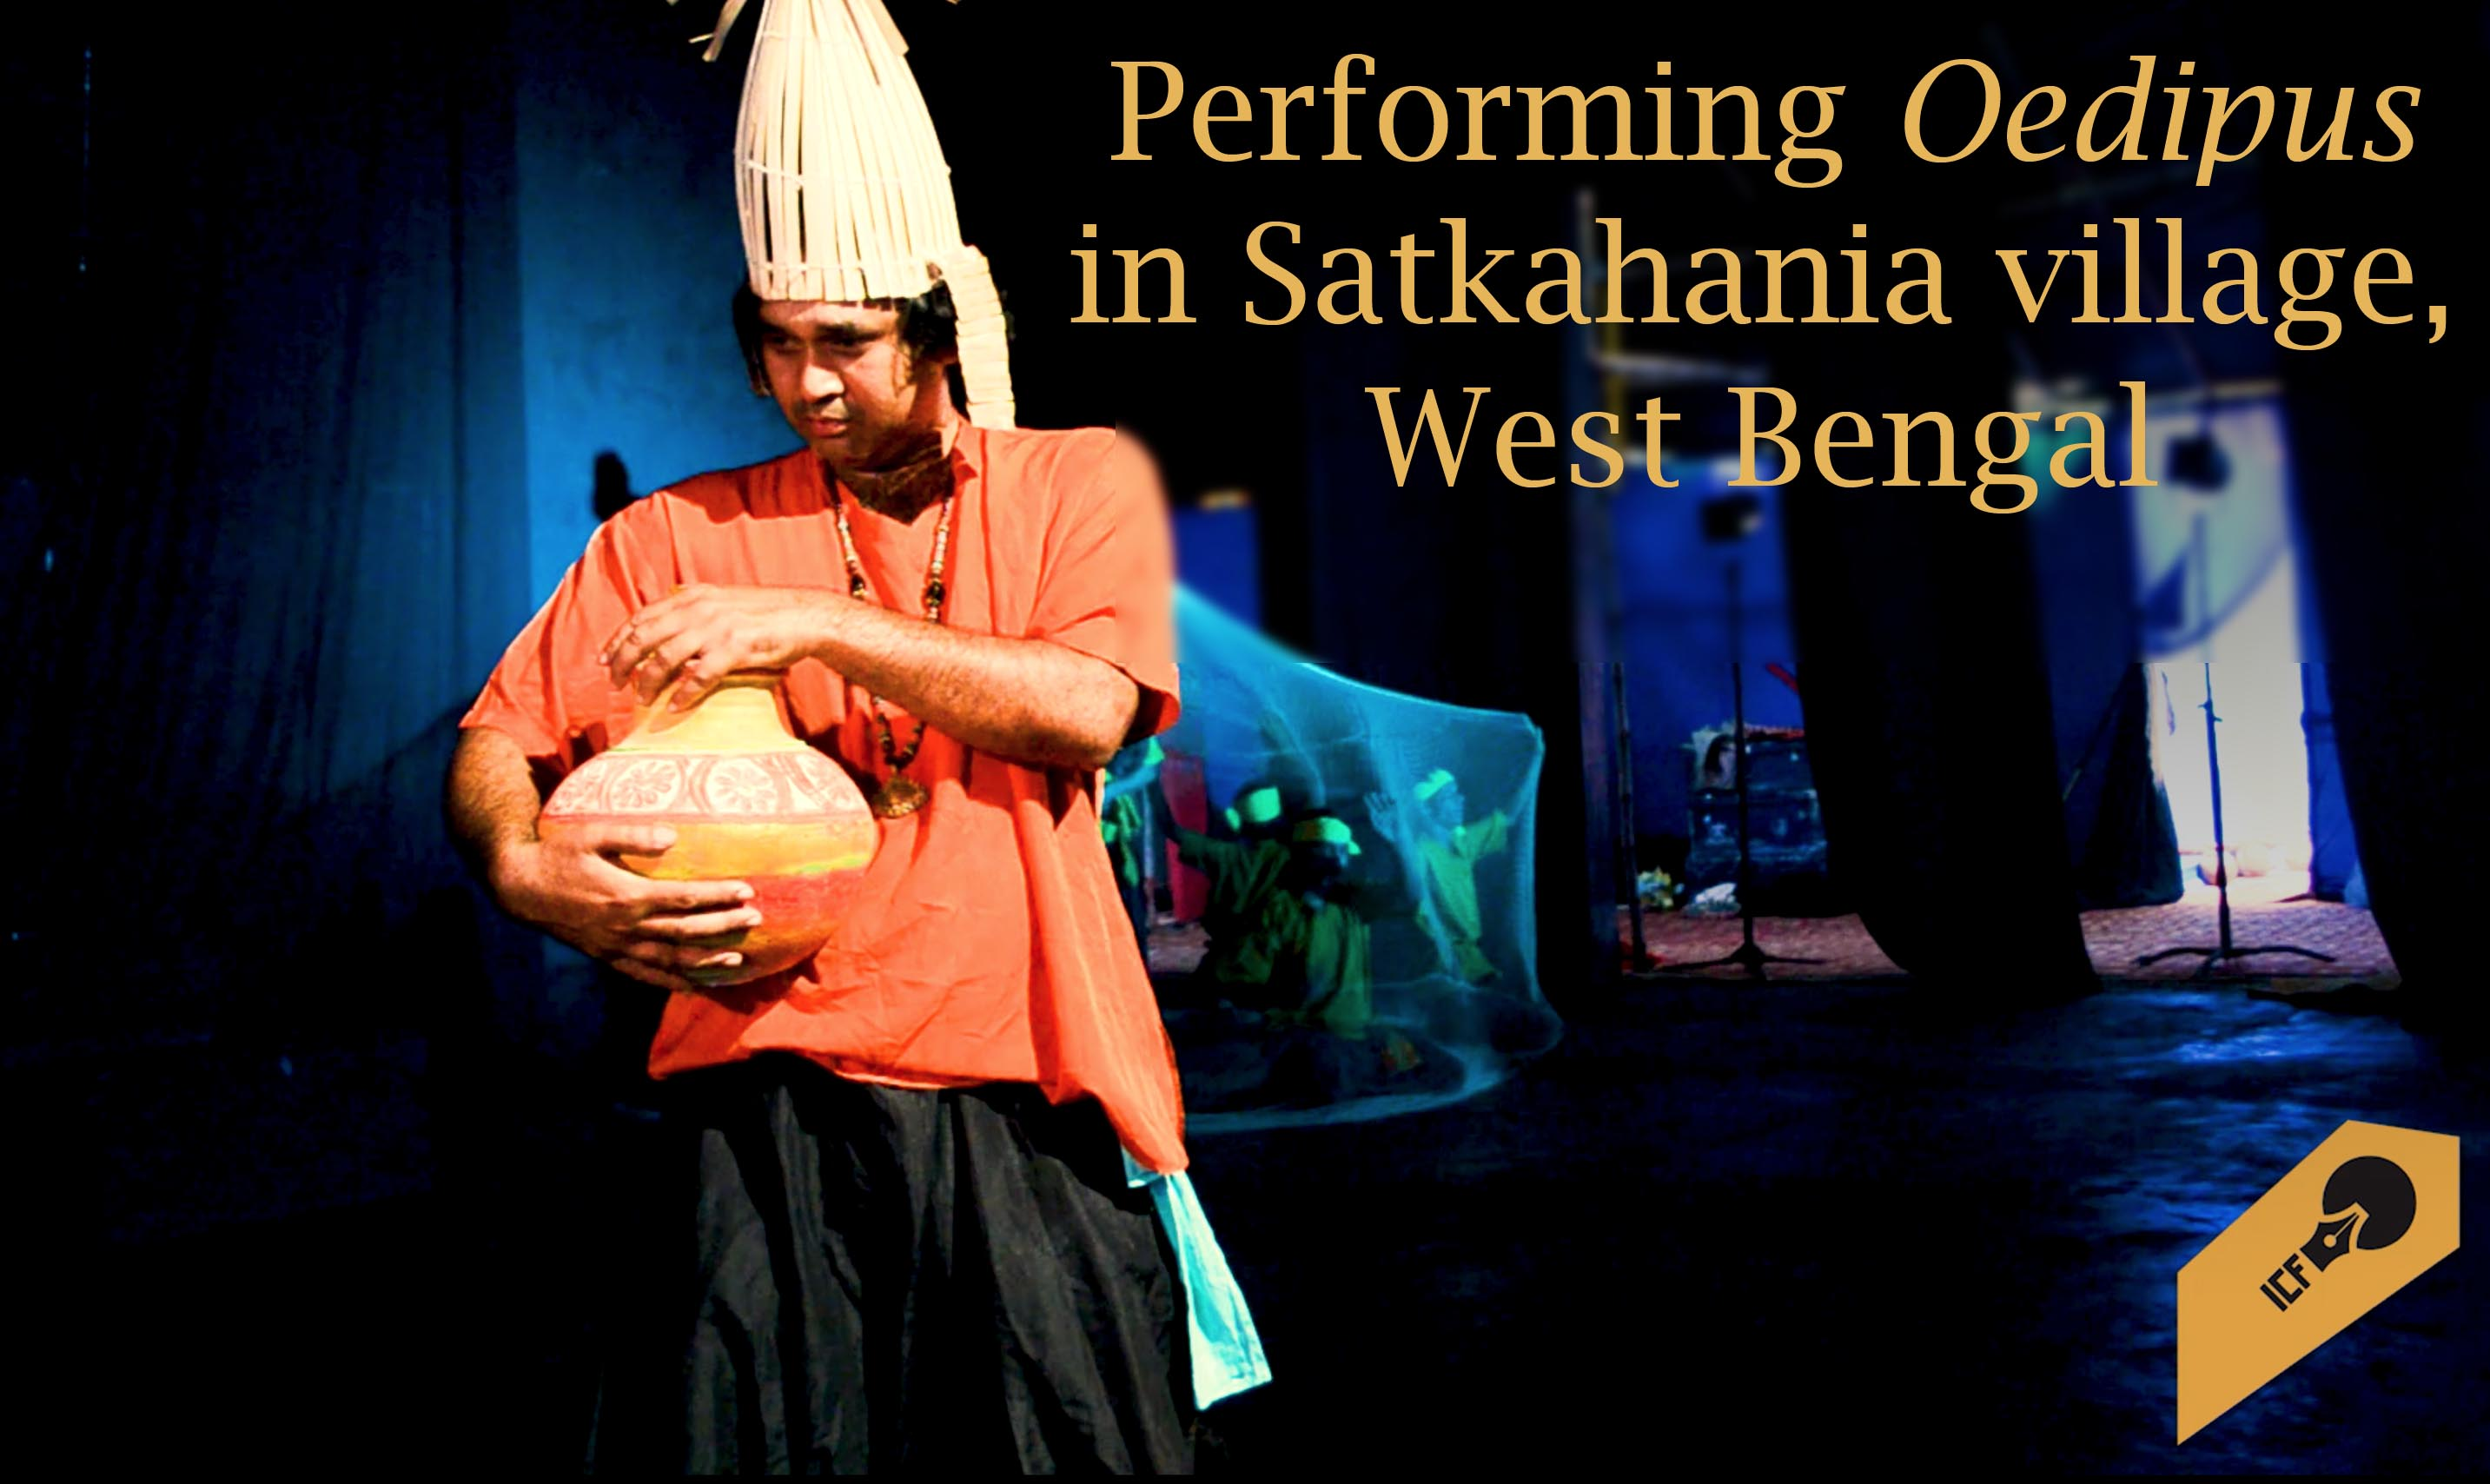 Performing Oedipus in Satkahania Village, West Bengal